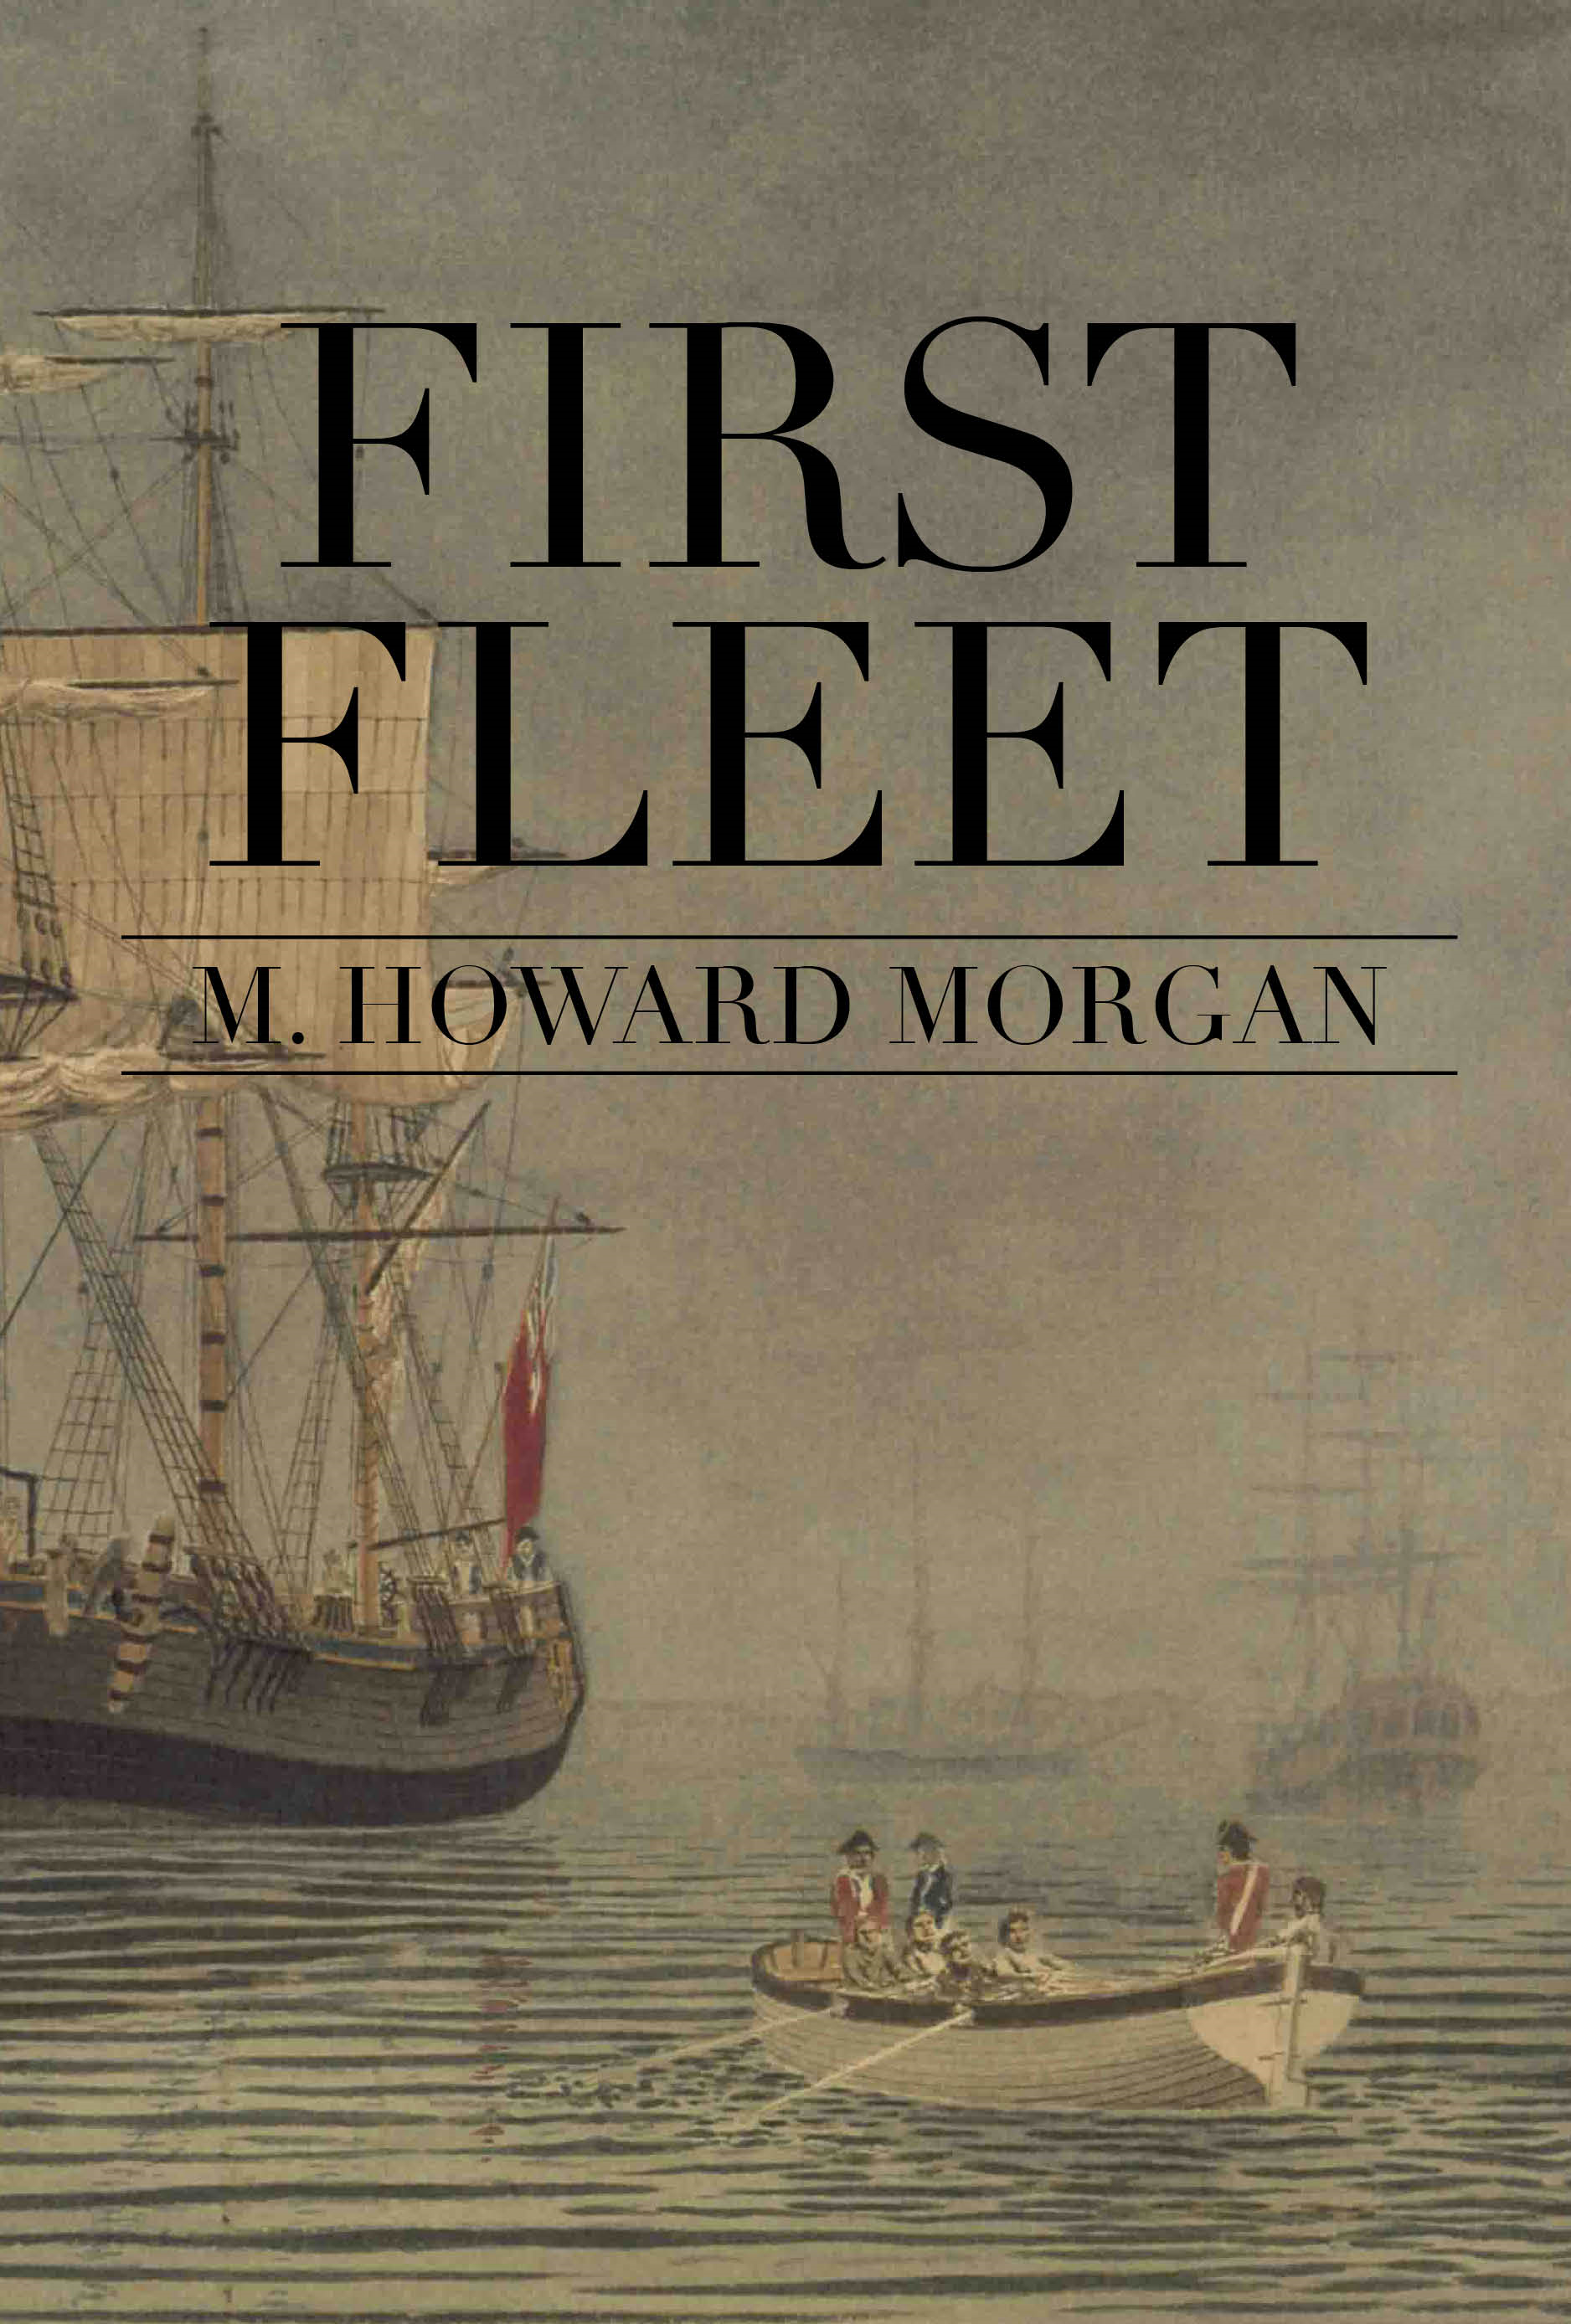 First Fleet By: M Howard Morgan